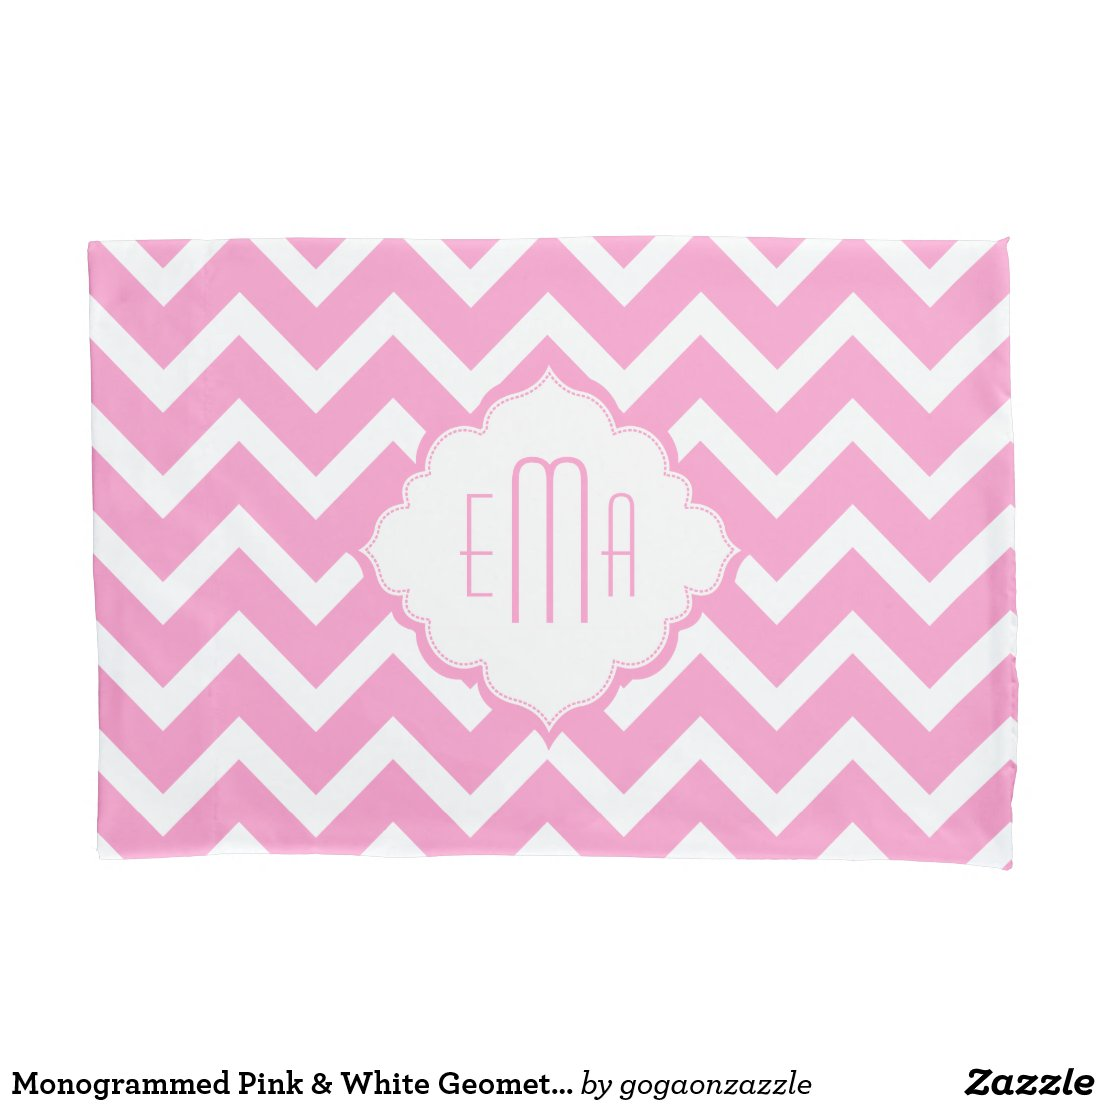 Monogrammed Pink & White Geometric Zigzag Chevron Pillowcase